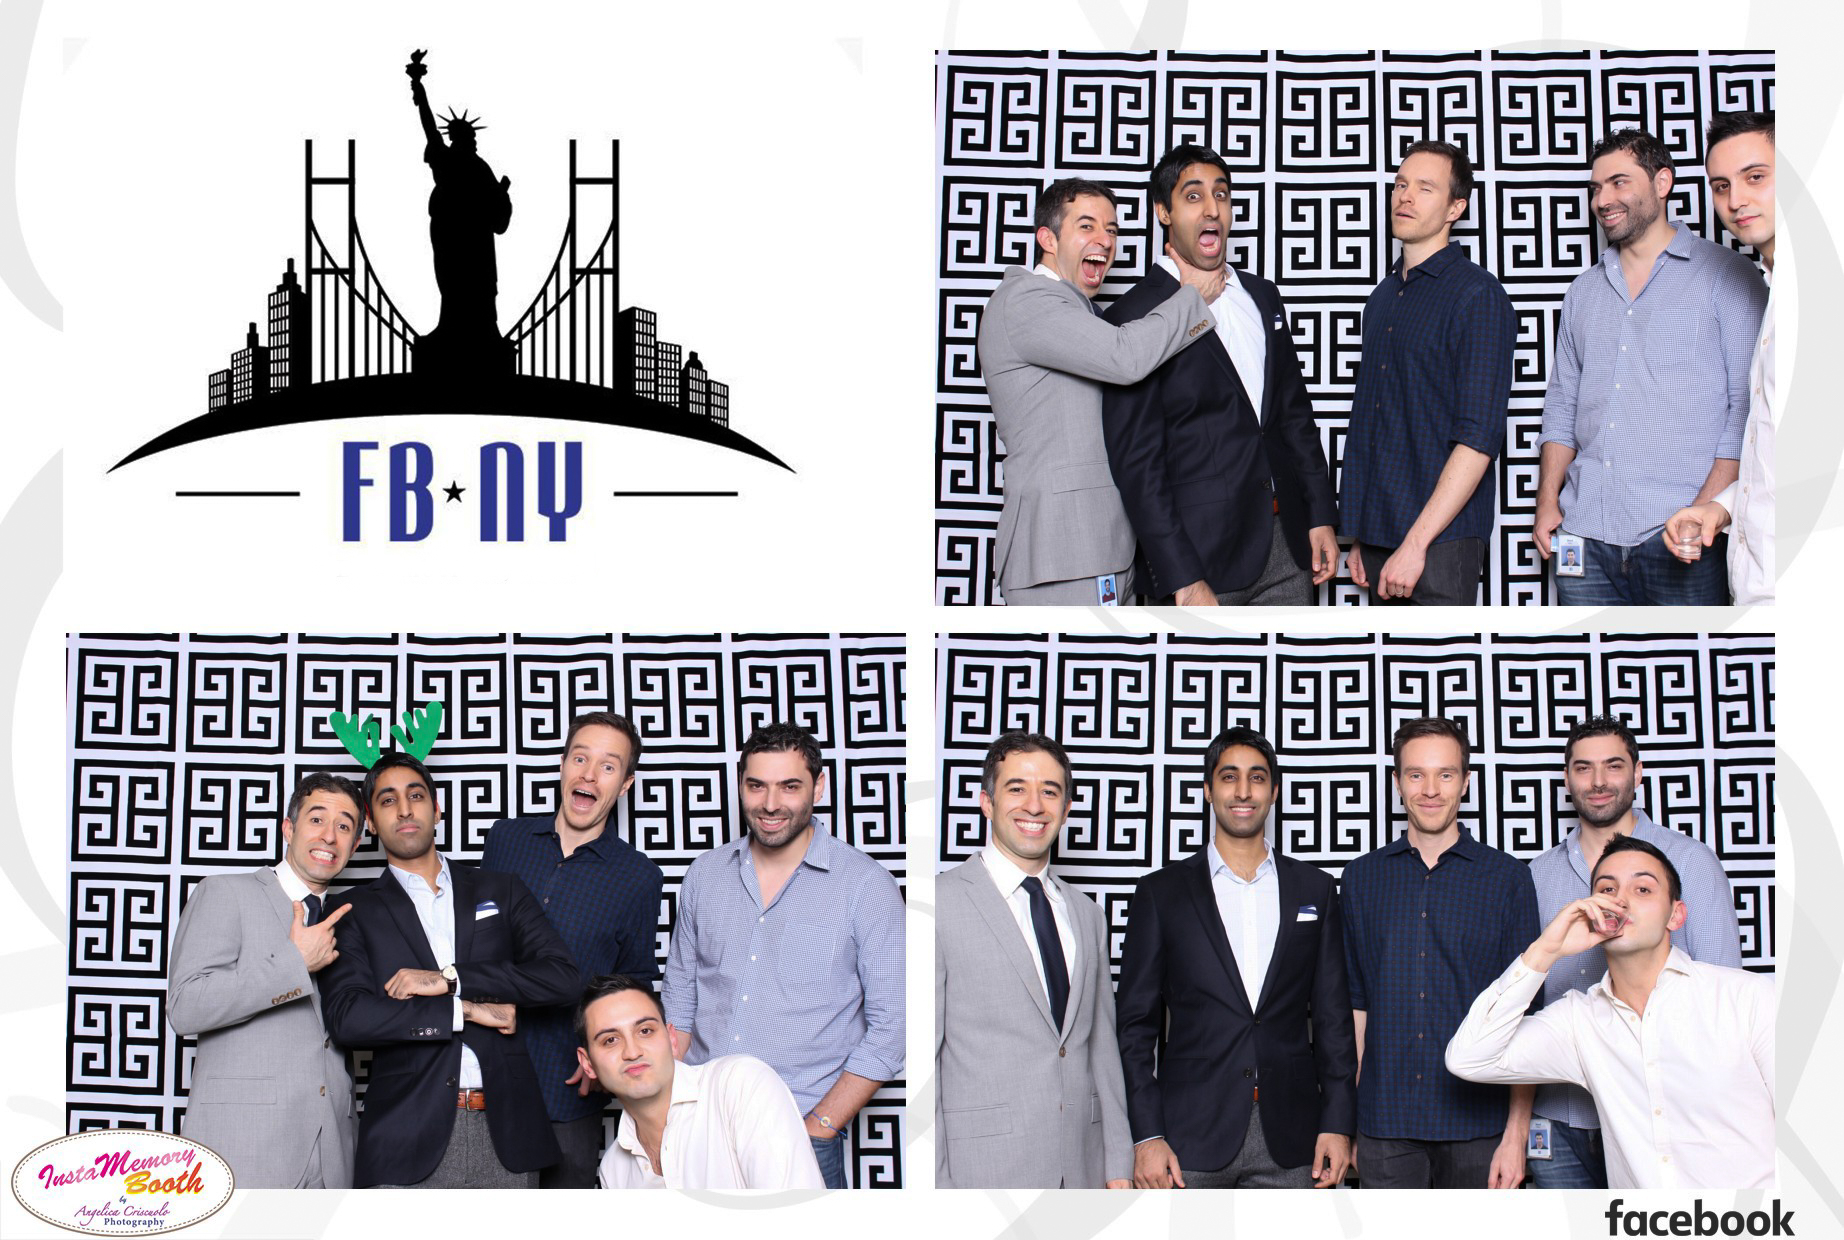 Best New York Photo booth rental w/ Facebook NY Corporate office - NYC